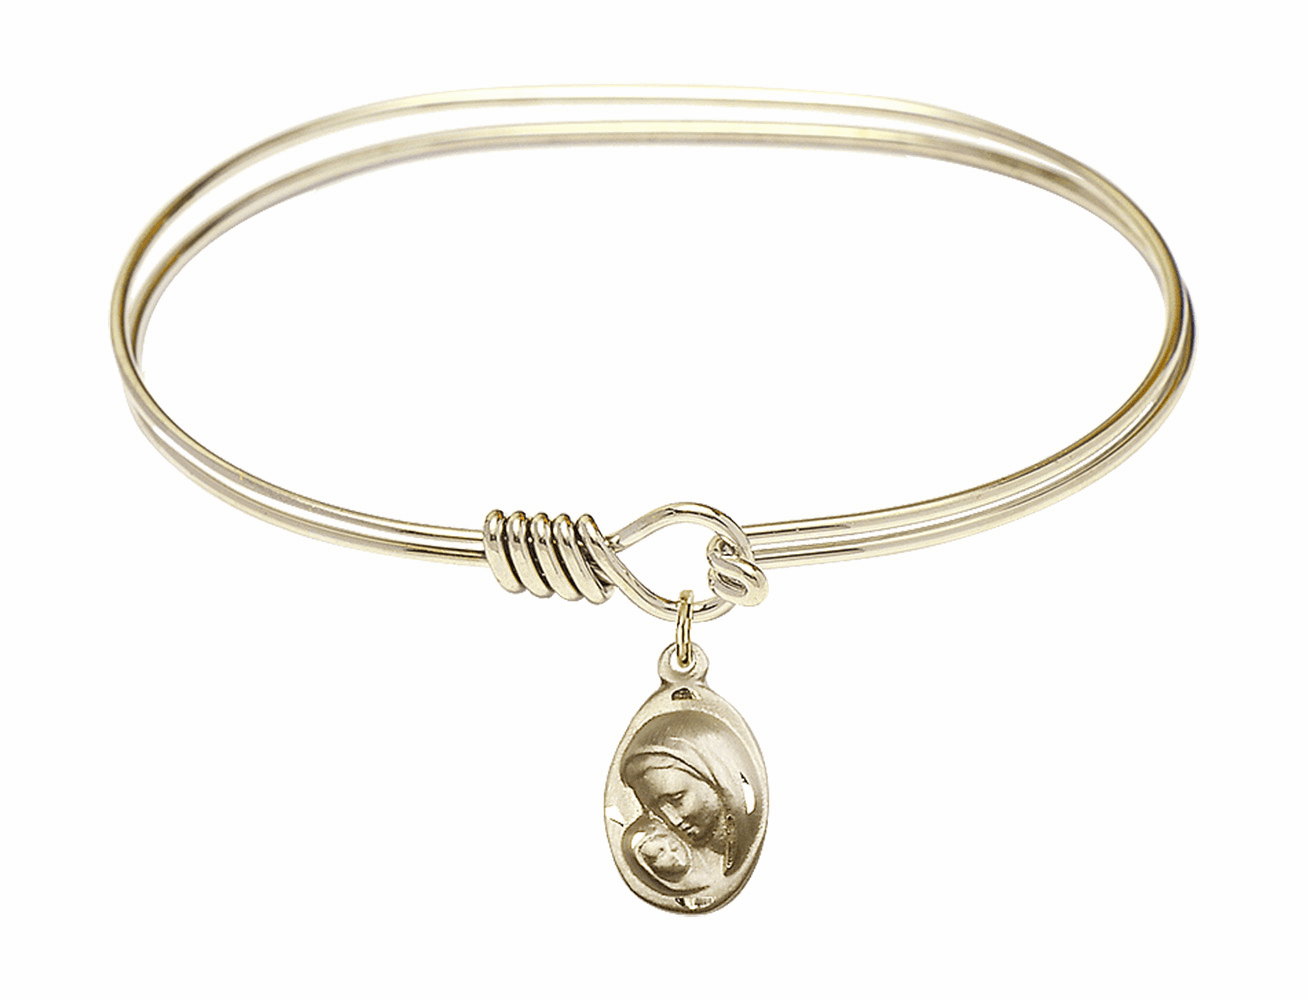 Round Eye Hook Bangle Bracelet w/Oval Madonna and Child Charm by Bliss Mfg